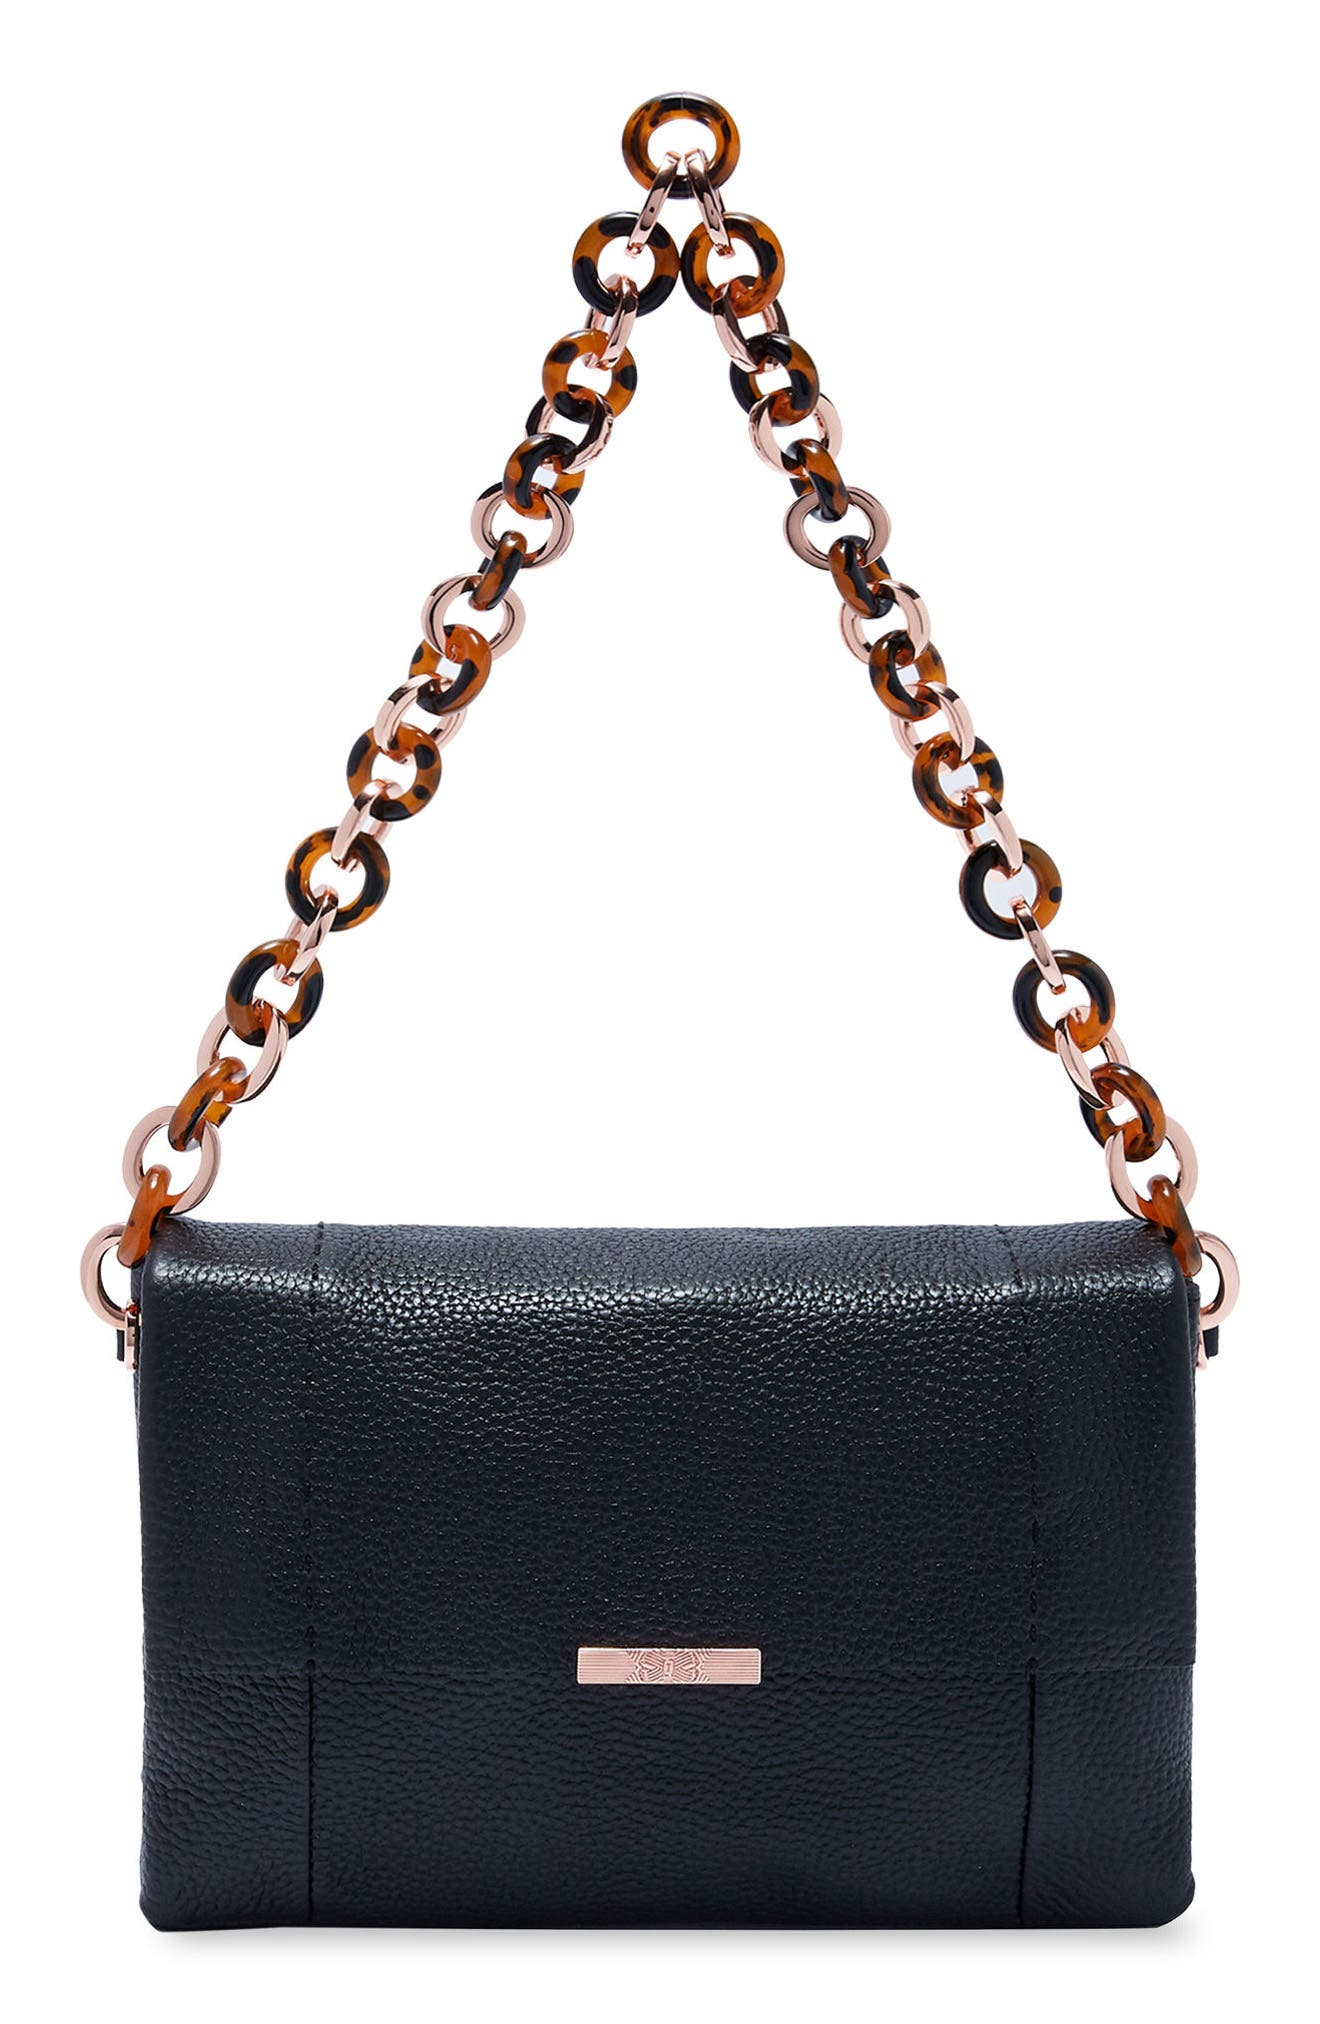 Ipomoea Leather Shoulder Bag,                         Main,                         color, 001